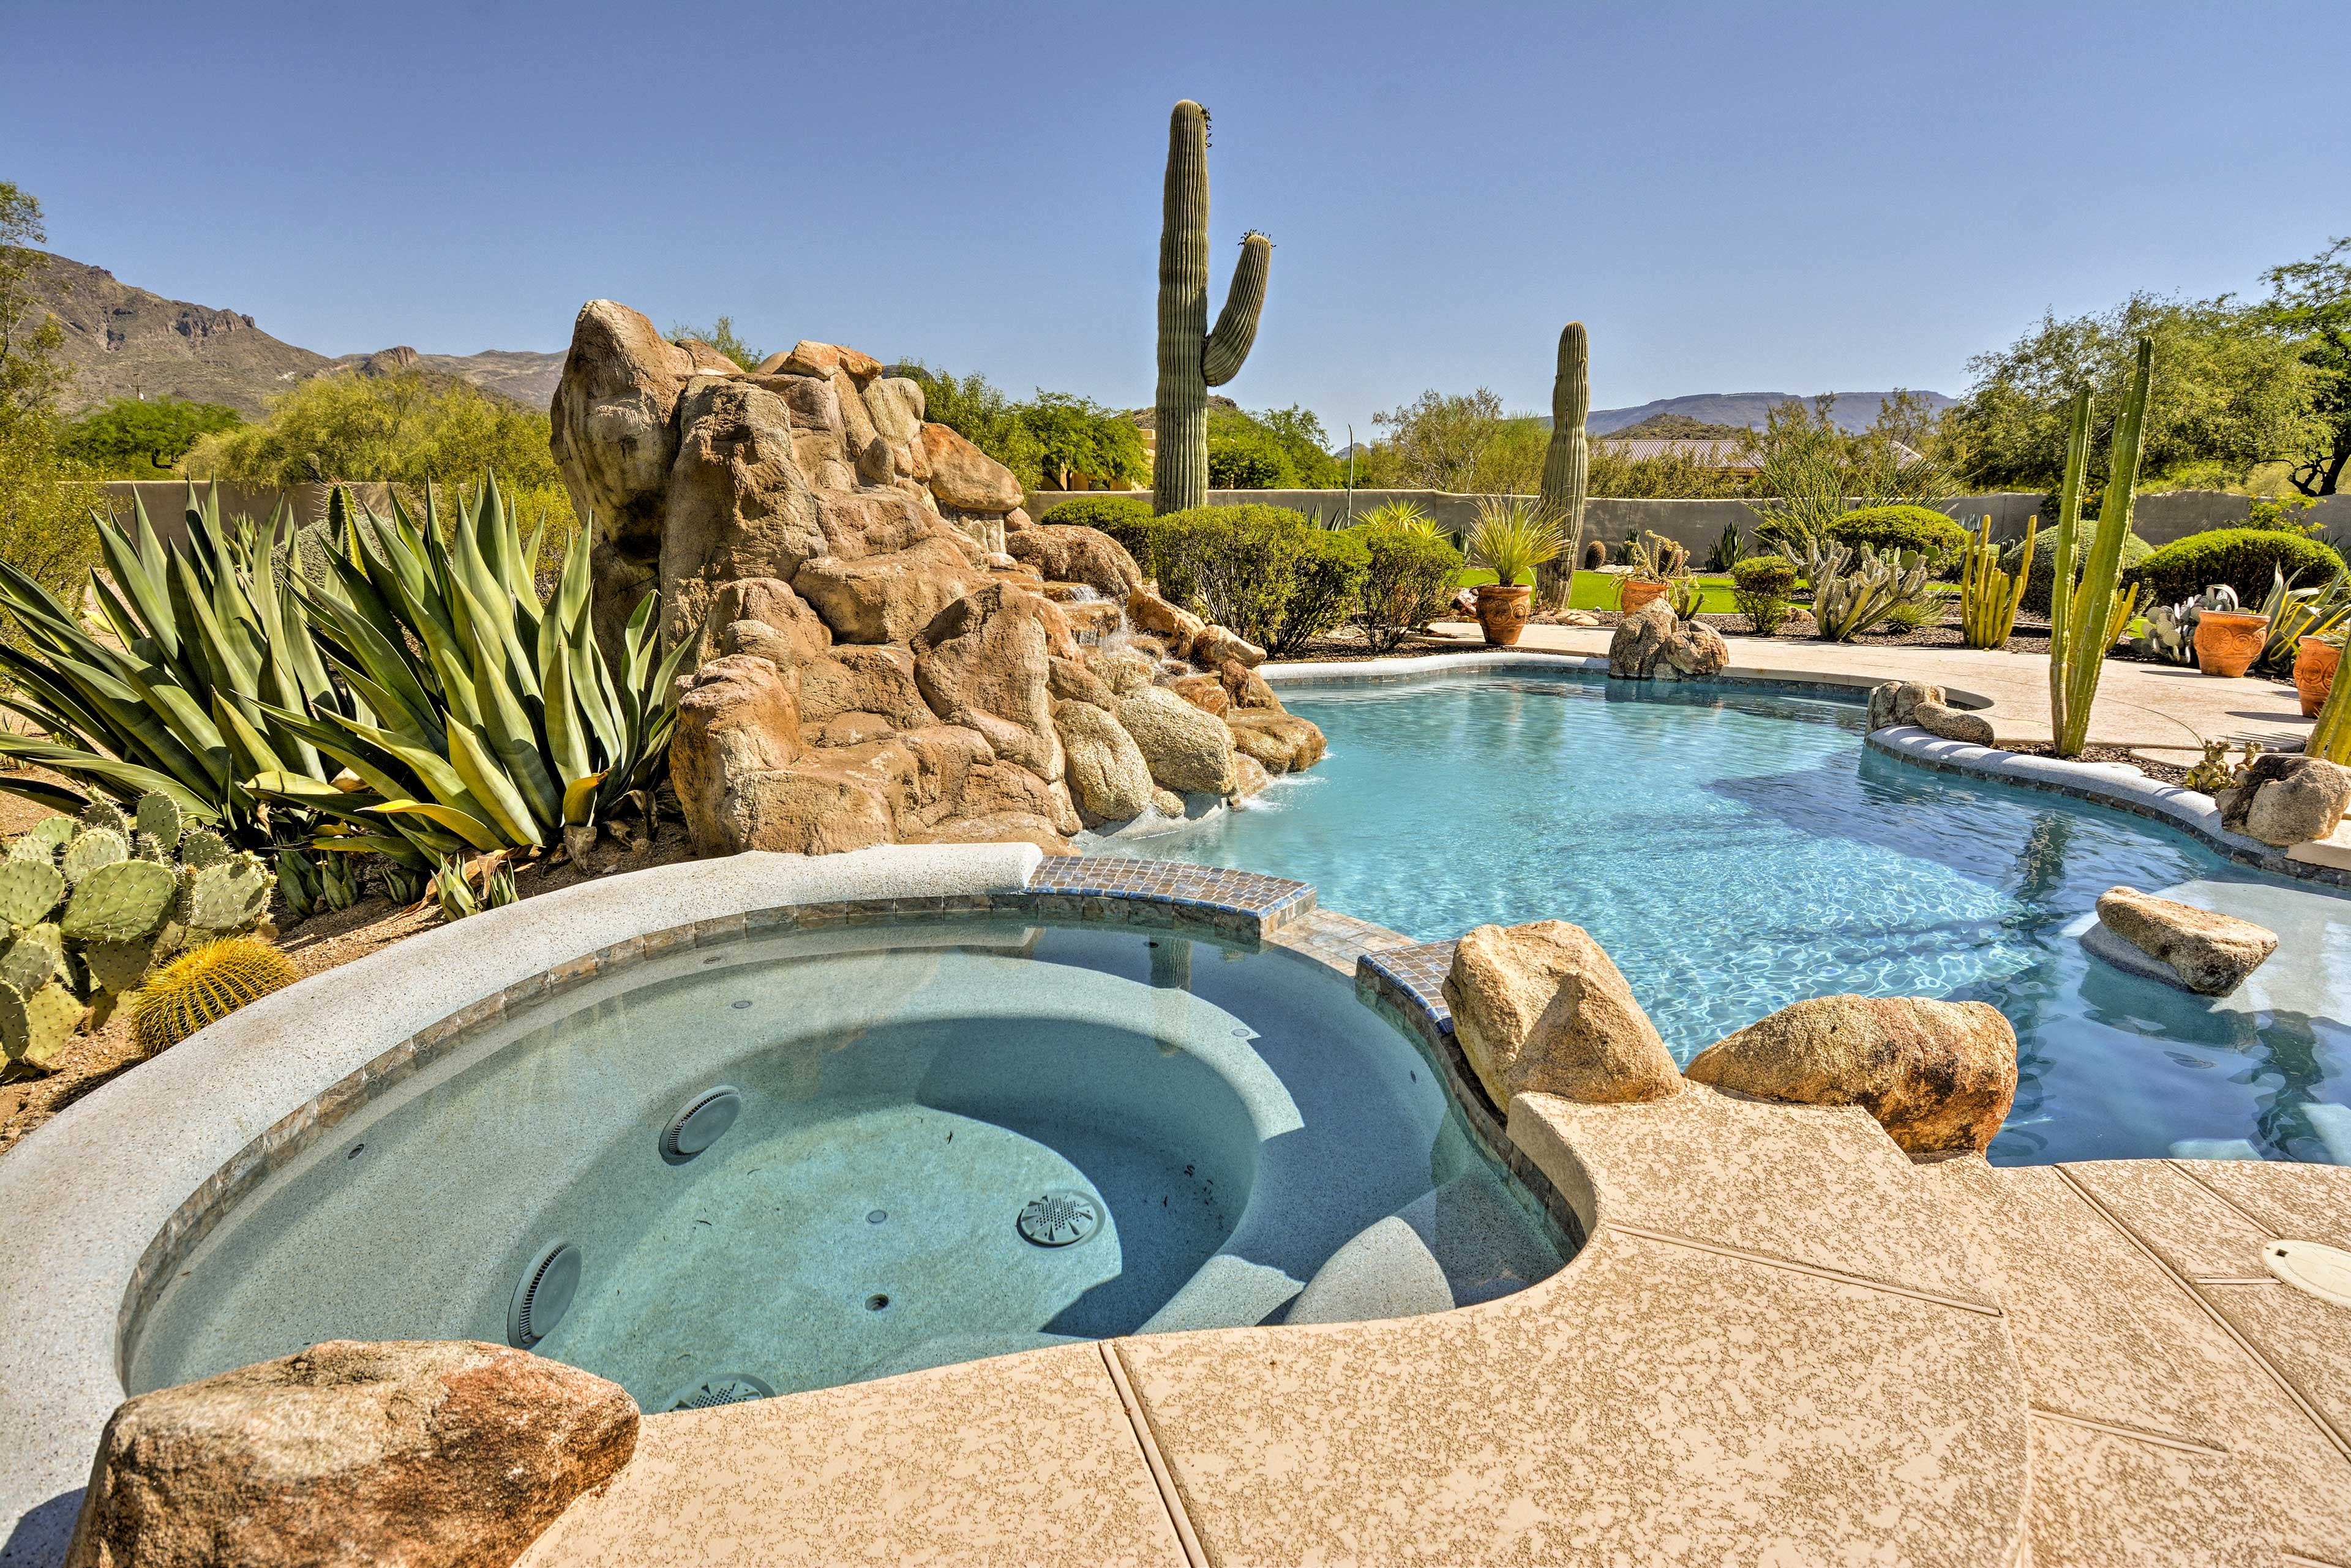 Cave Creek Vacation Rental   Home   4BR   4.5BA   4,500 Sq Ft   Step-Free Access